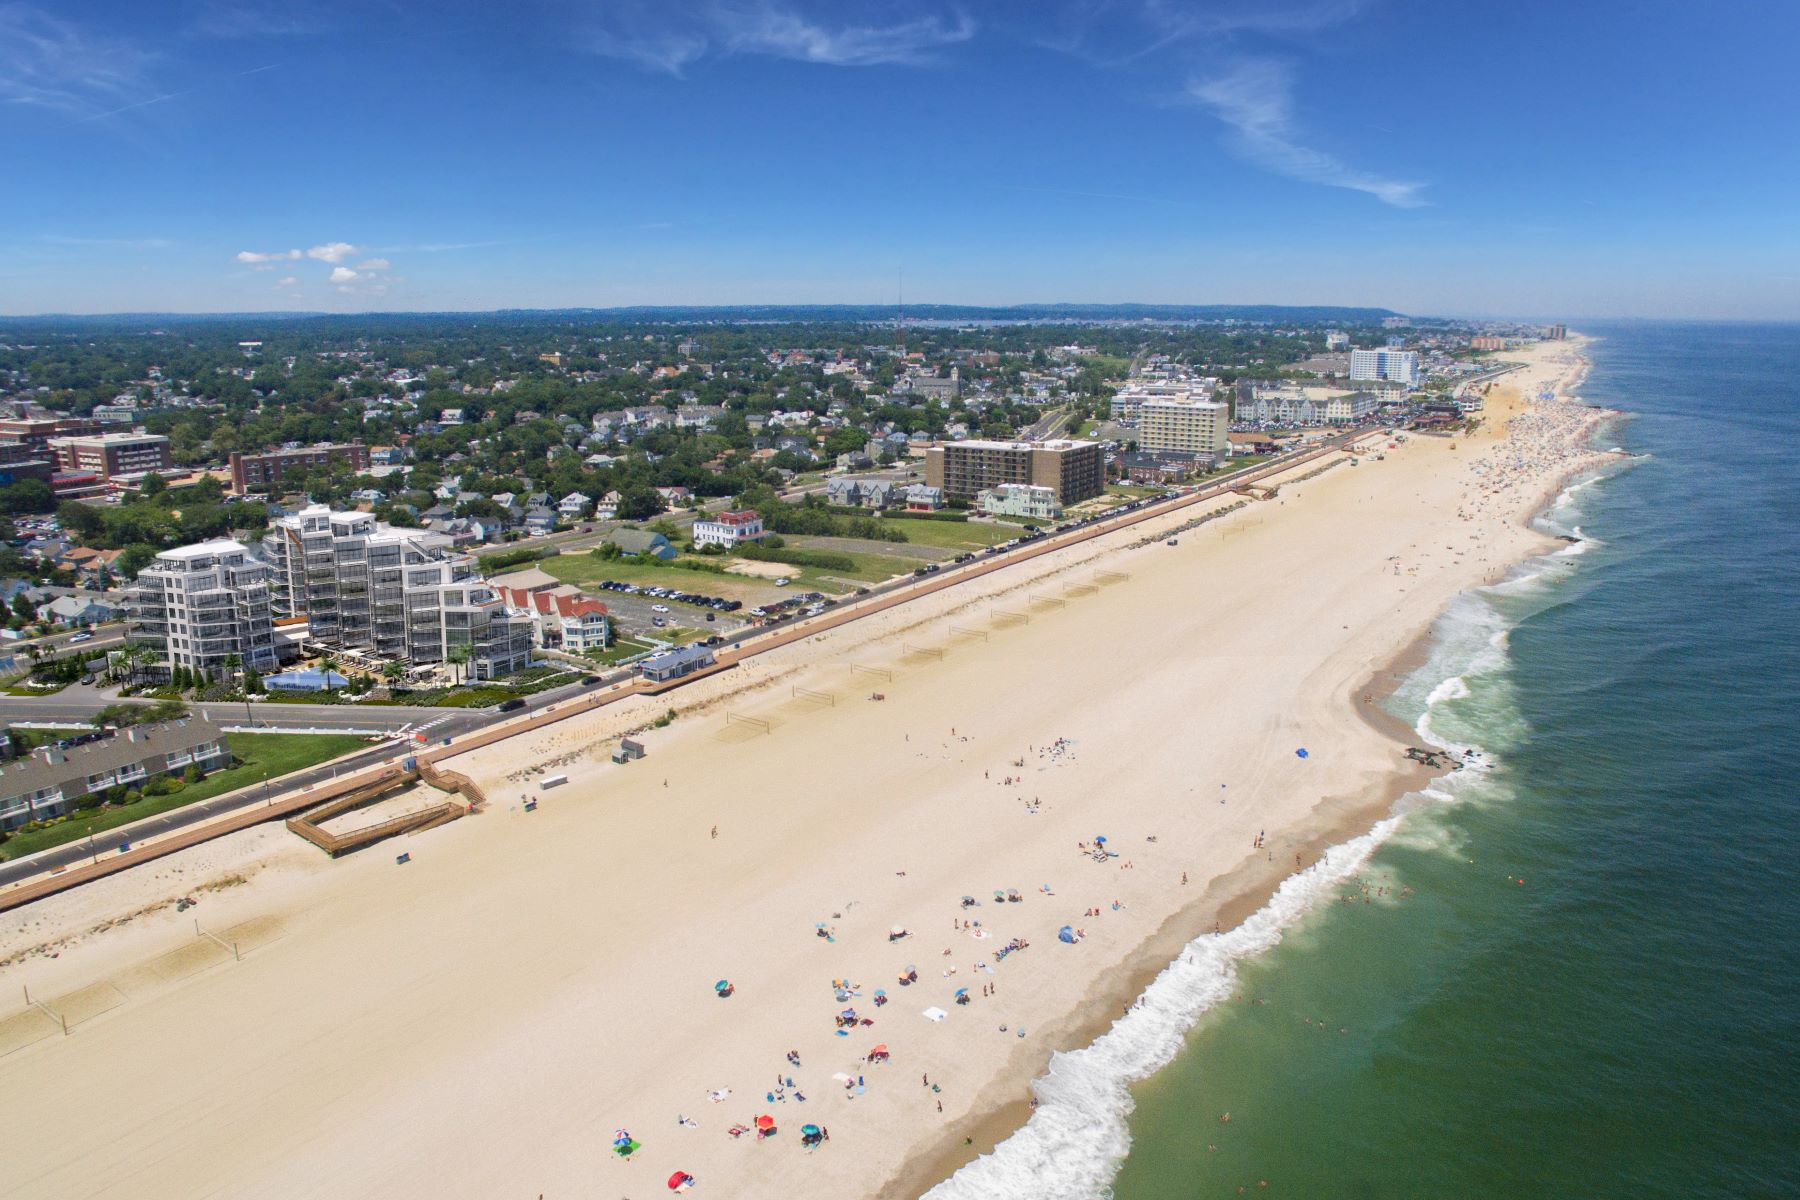 Condominiums للـ Sale في South Beach at Long Branch 350 Ocean Avenue 405, Long Branch, New Jersey 07740 United States